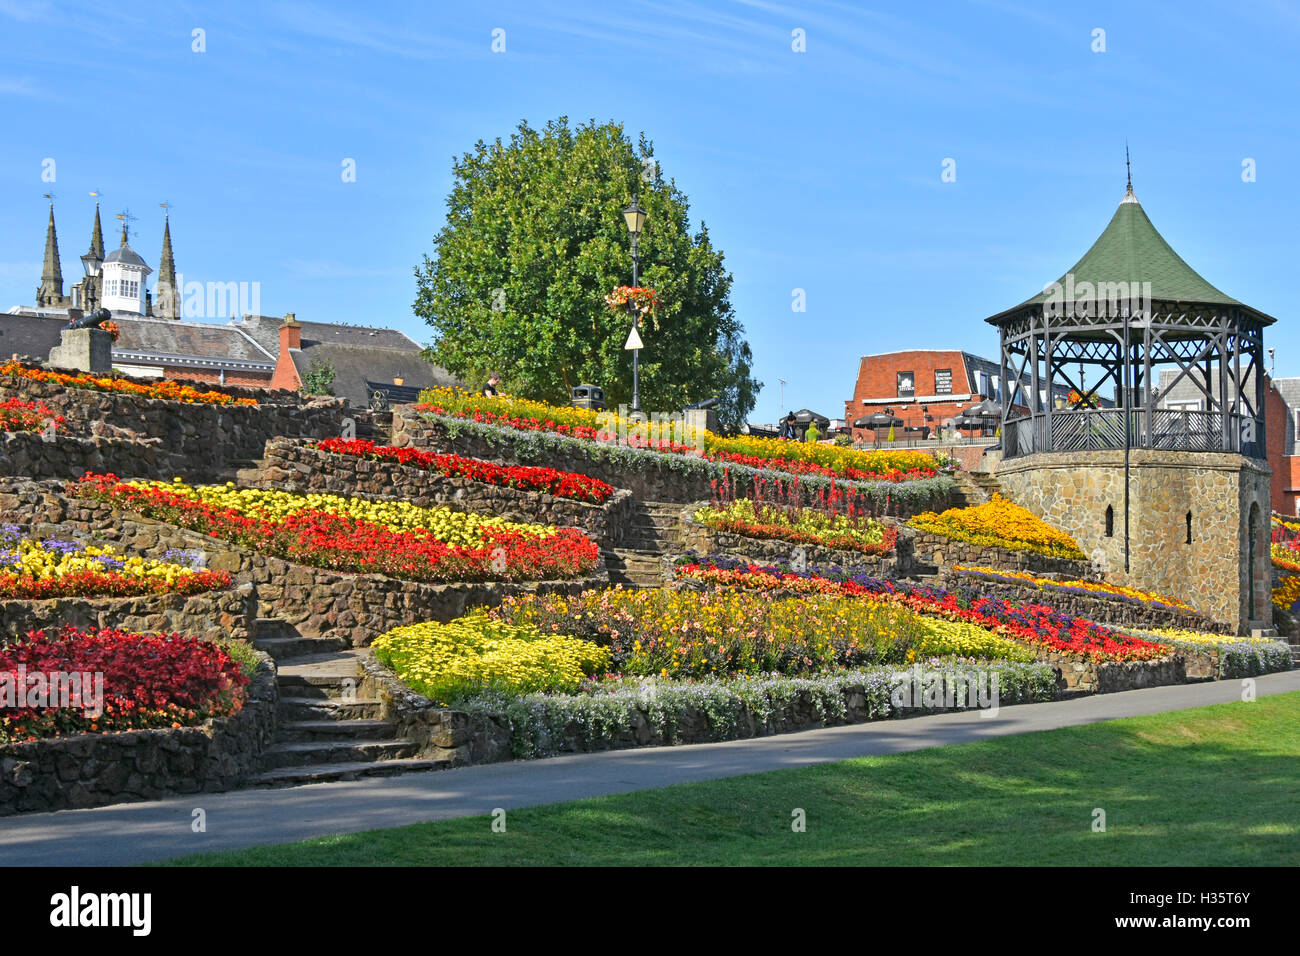 Summer flowers display on terraced embankment in public park gardens beside bandstand in Castle Grounds, Tamworth, - Stock Image